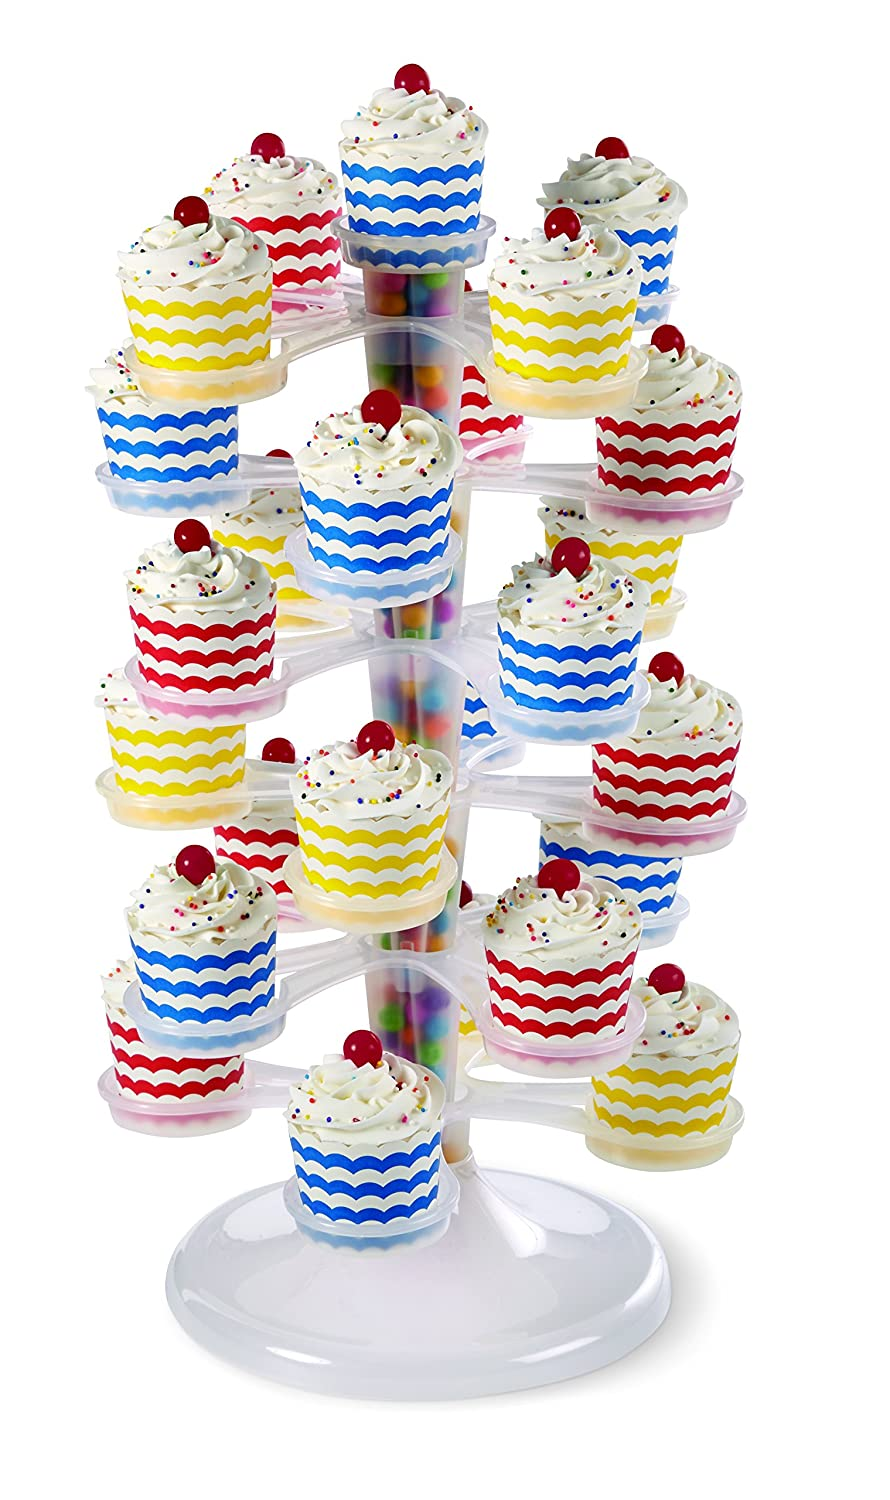 6 Tier 18.7in High 47.4 cm Wilton Cupcake and Dessert Stand//Tower Stand